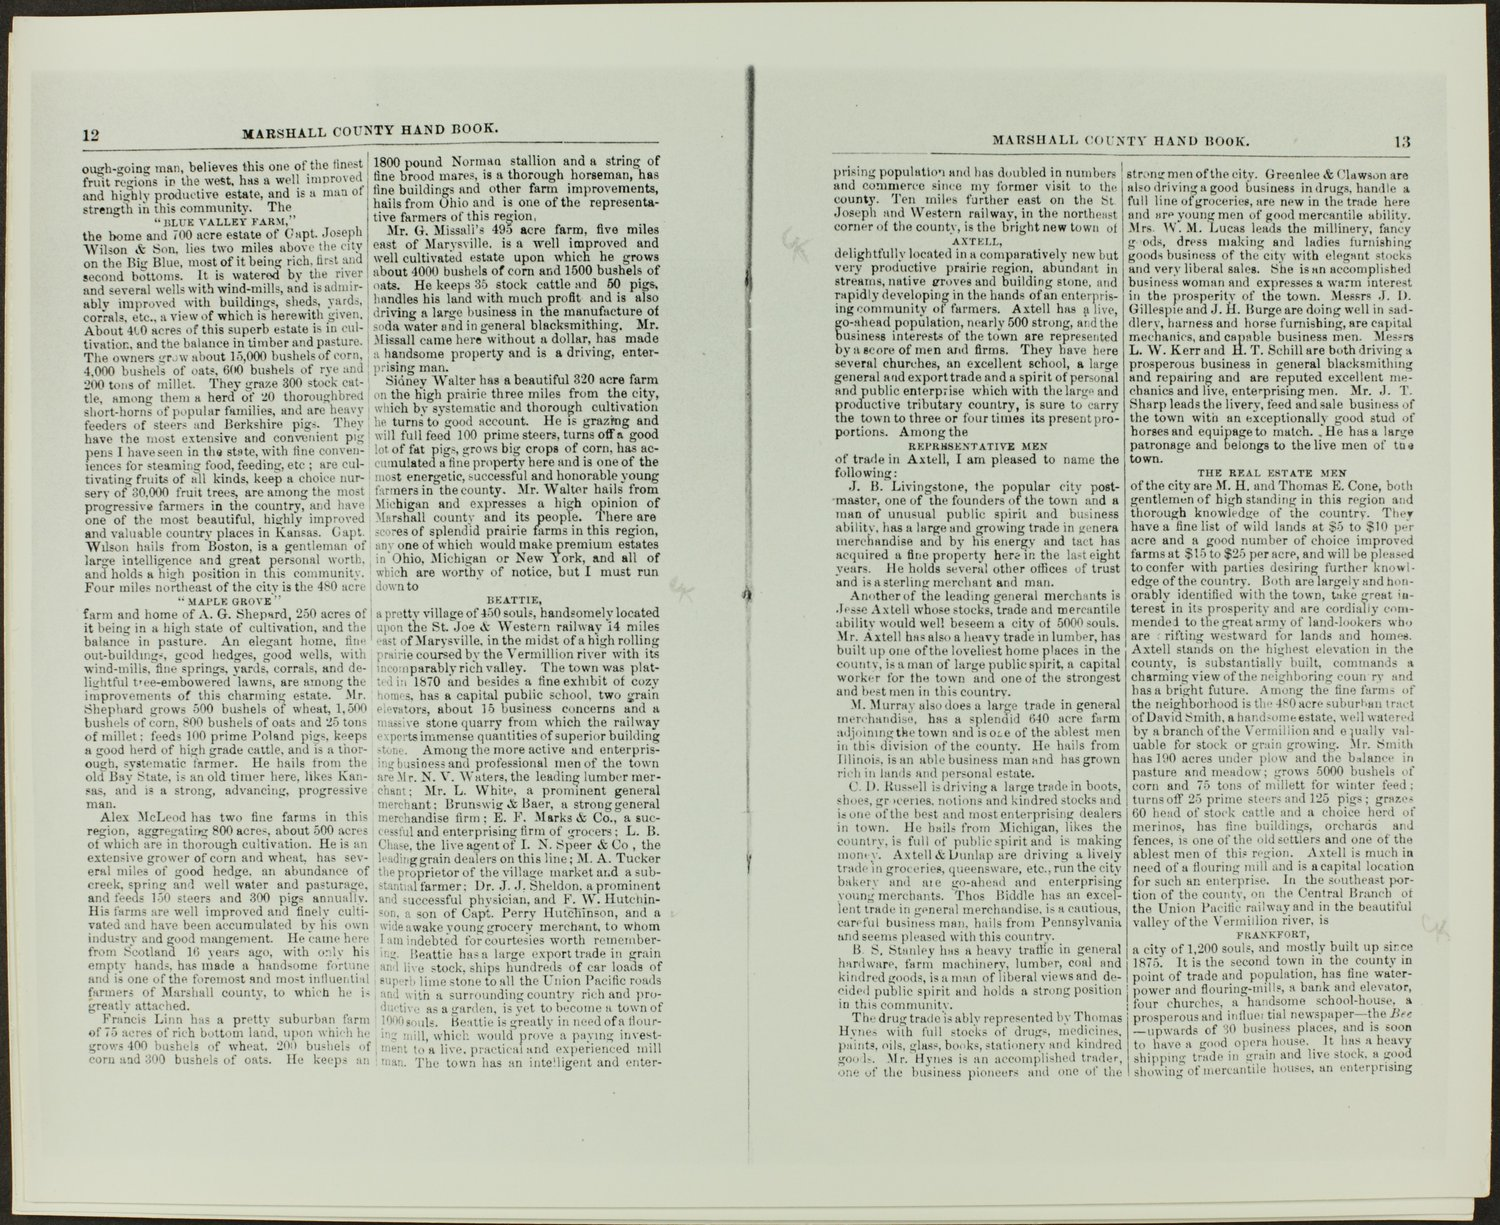 Handbook of Marshall County, Kansas - Pages 12 & 13